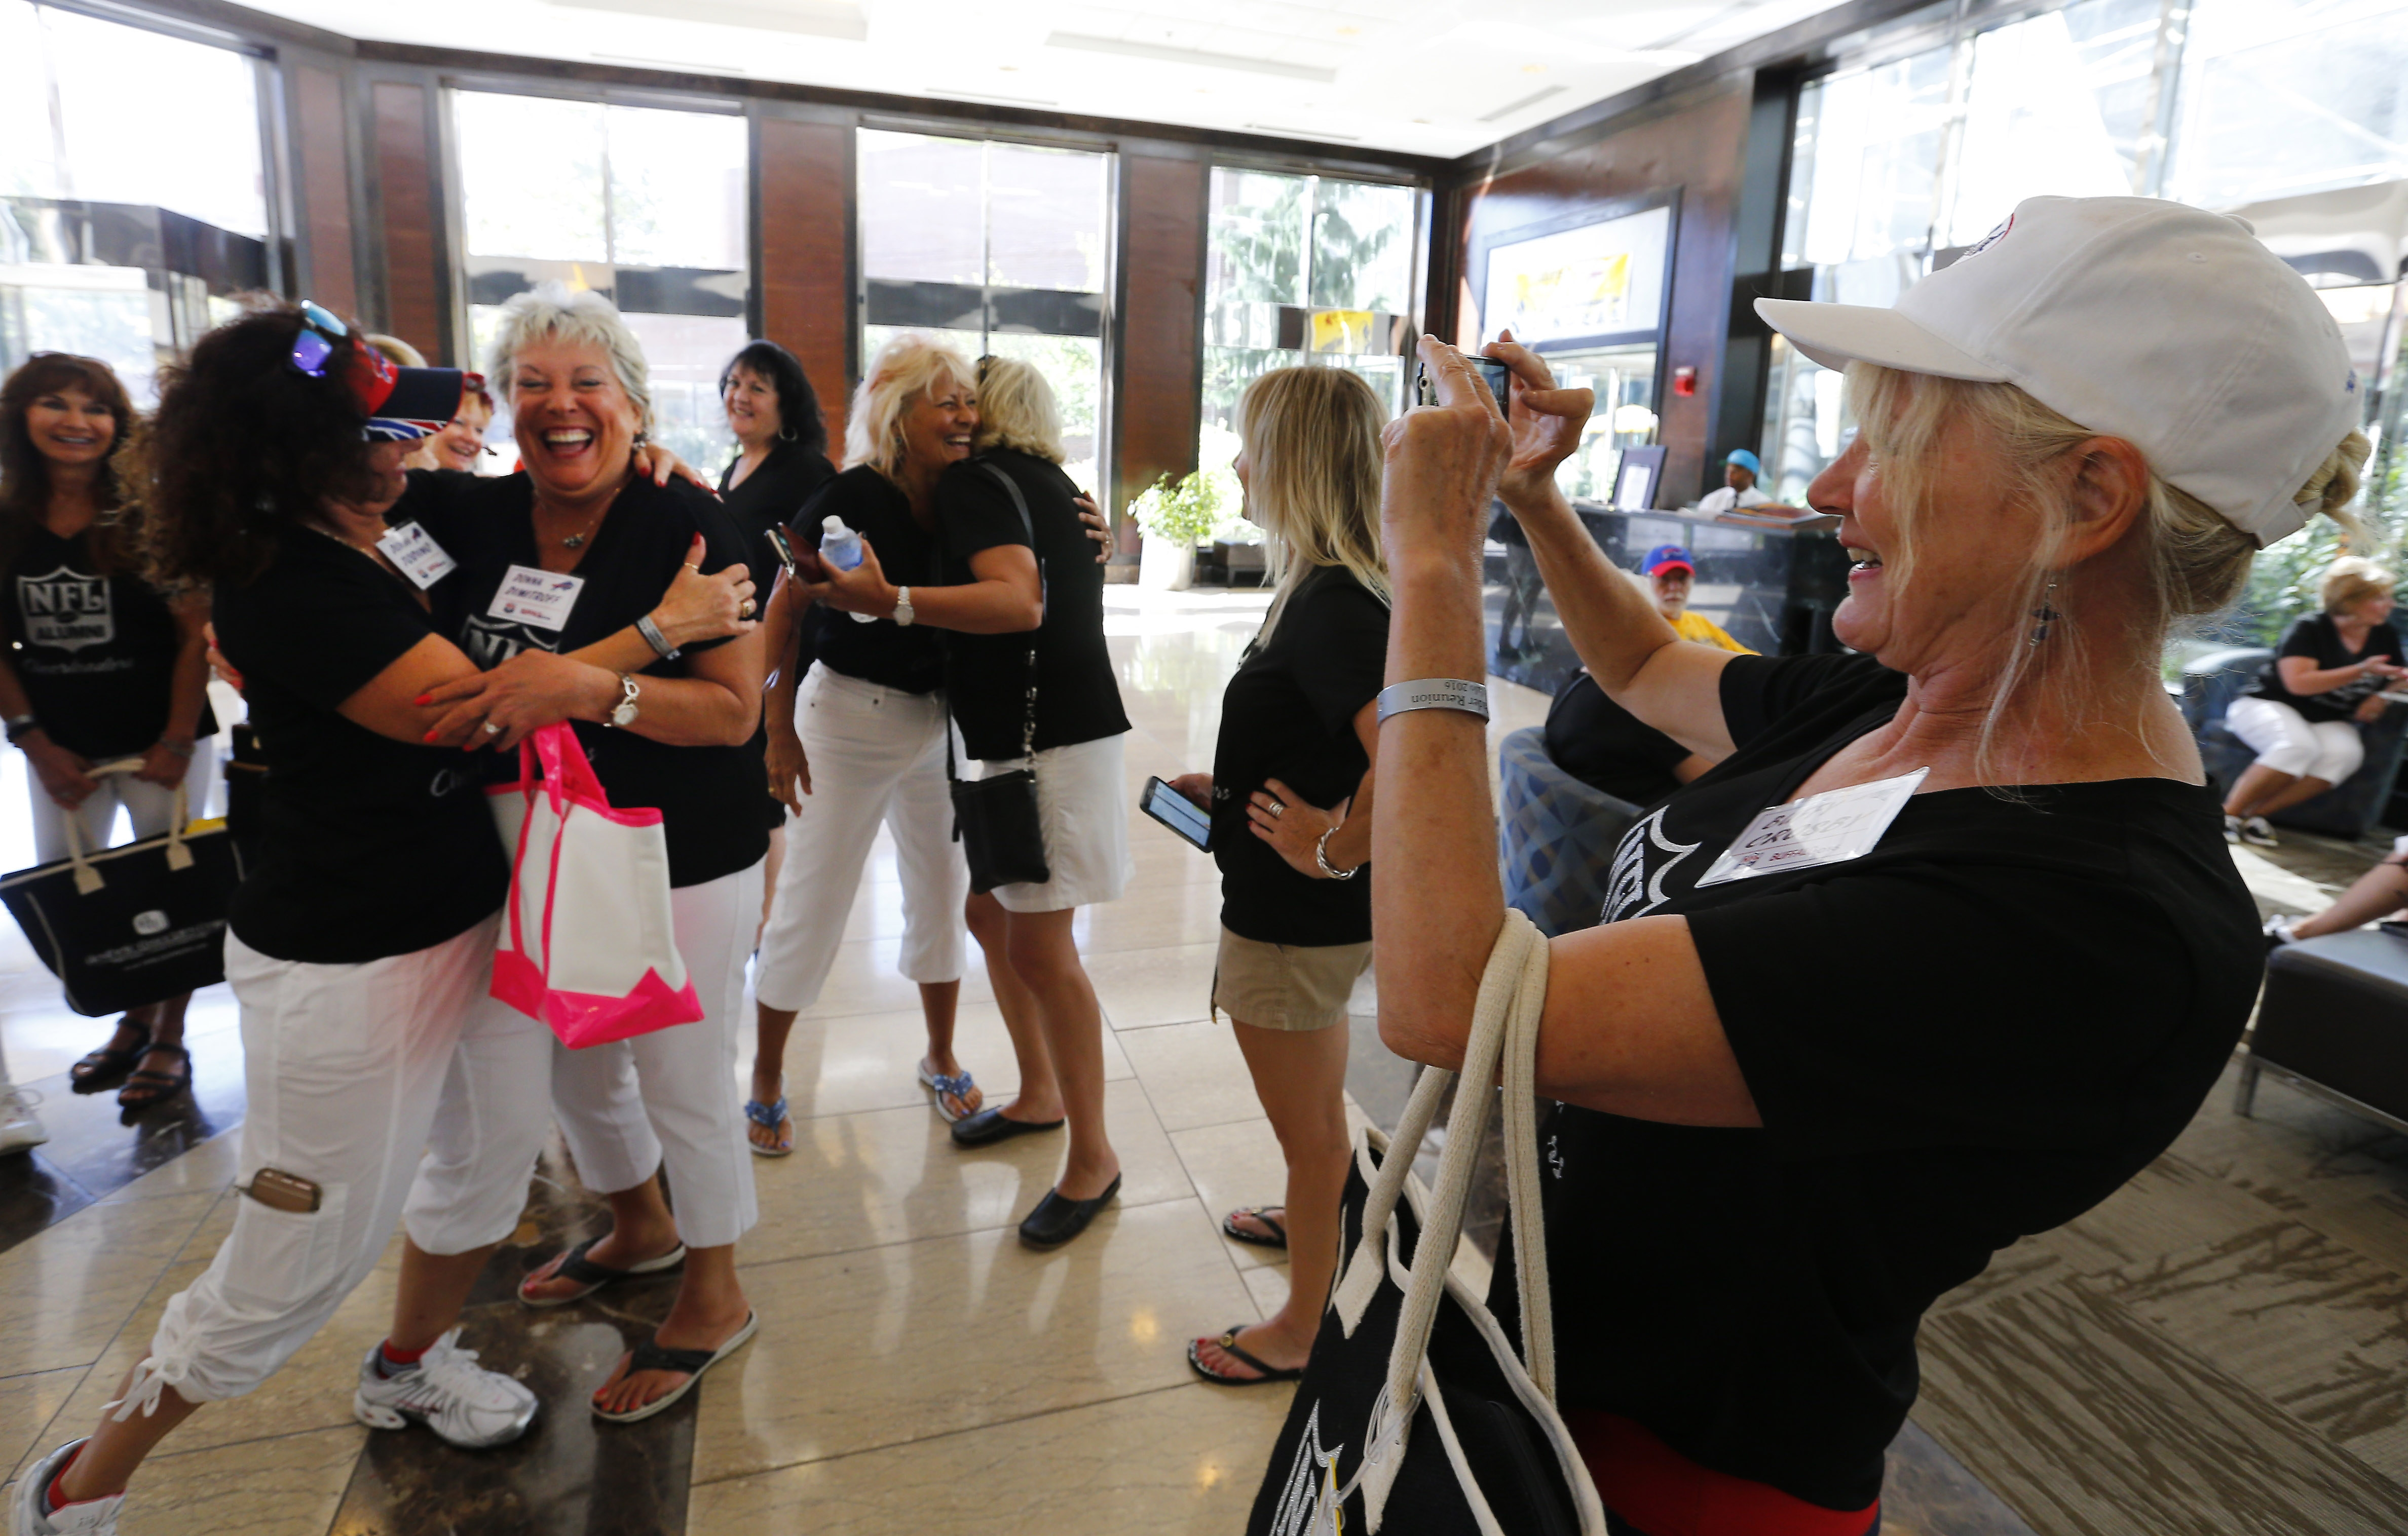 Former New England Patriots cheerleader Buffy Crosby, right, snaps a photo of former Jills cheerleaders Donna Todino, left, and Donna Dimitroff, second left, before a trip to Niagara Falls.